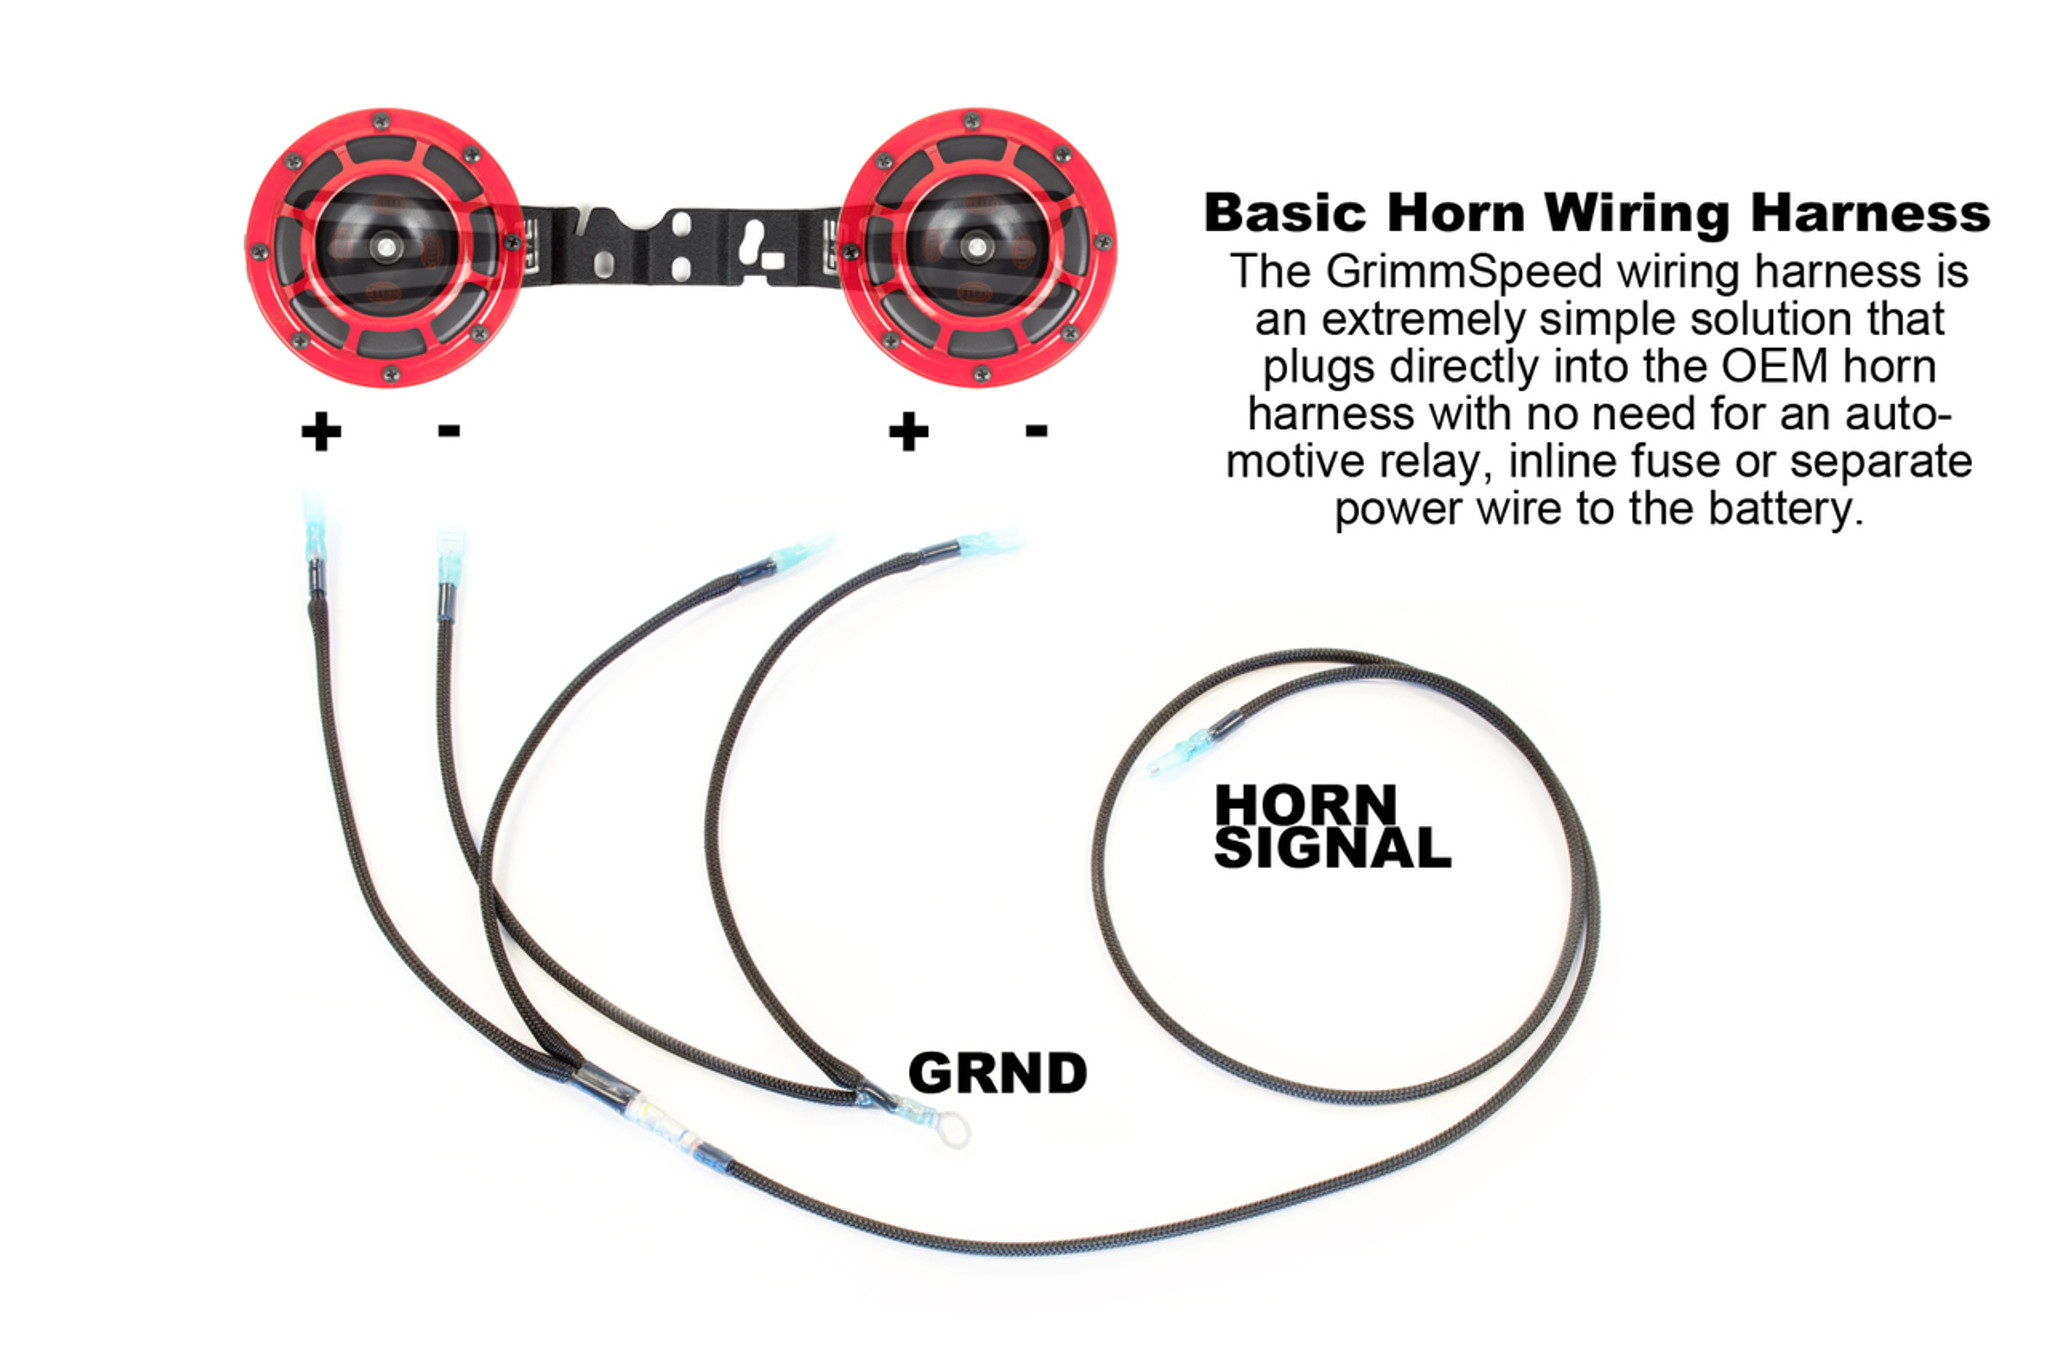 brotie_subaru_GD_GR_VA_9_1600__82146.1432237968?c=2 grimmspeed hella horn wiring harness 02 14 wrx, 04 14 sti grimmspeed EZ Wiring Harness Diagram Chevy at bayanpartner.co